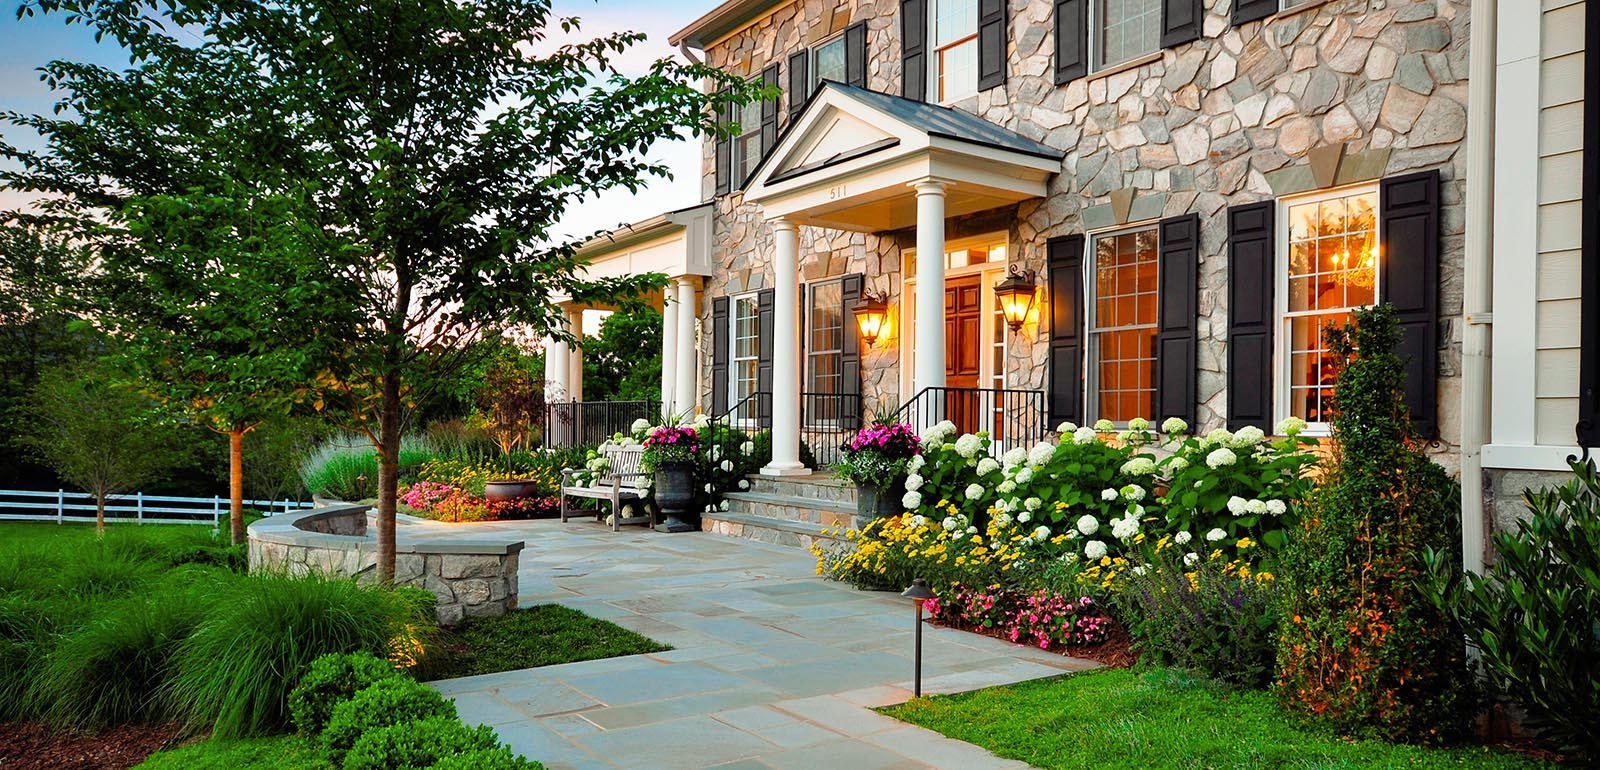 marvellous-green-rectangle-vintage-grass-front-yard-flower-beds-ornamental-trees-and-many-flowers-ideas